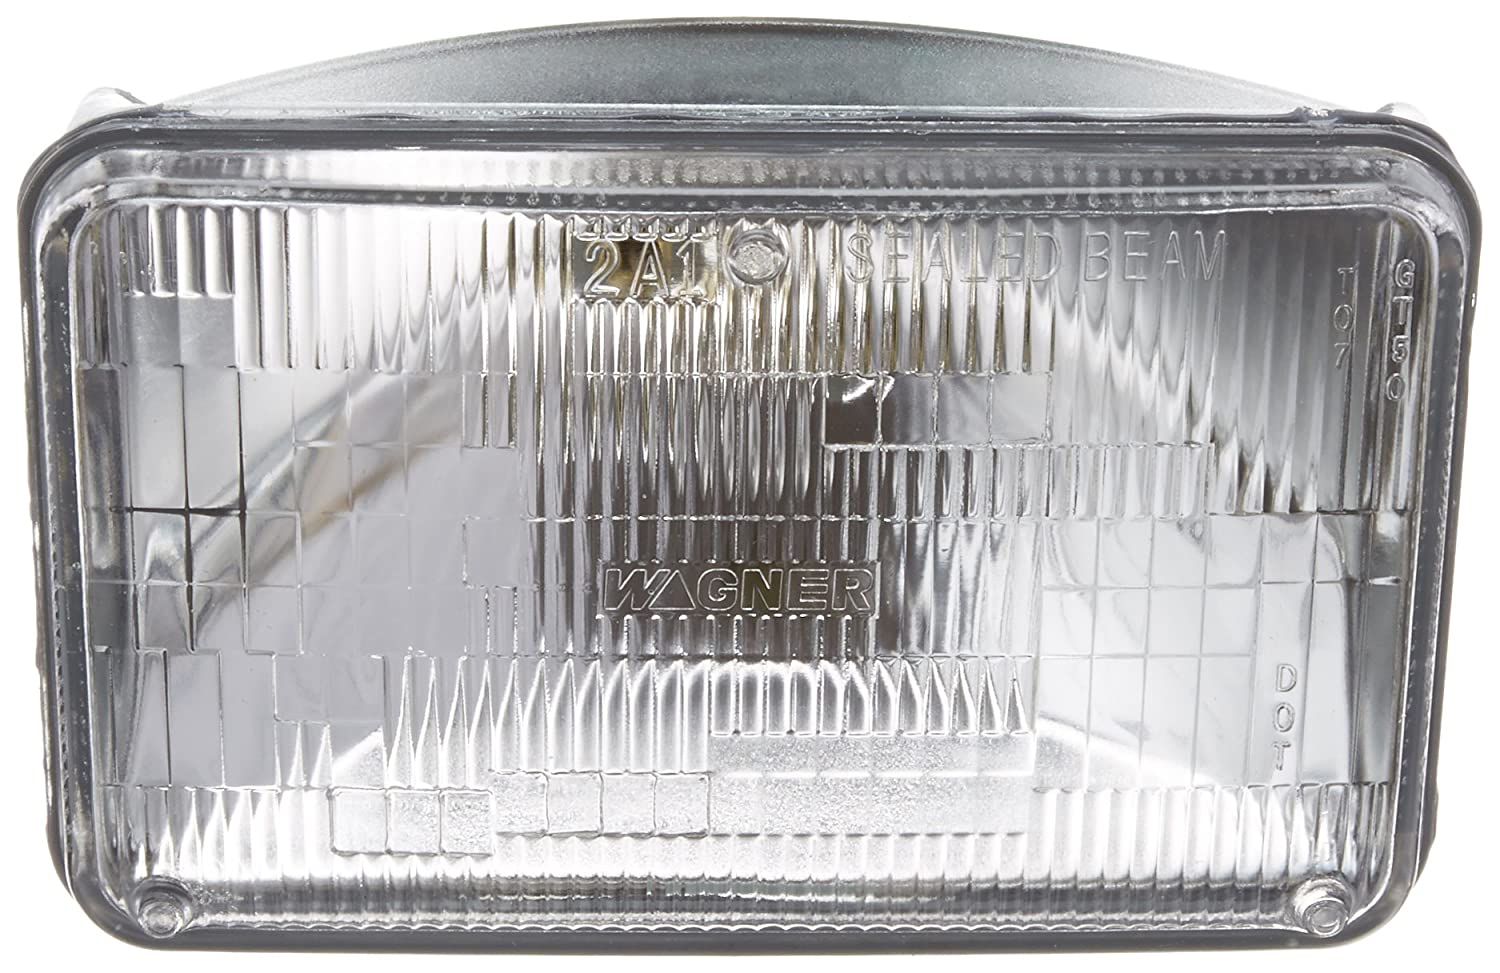 811yUKObKuL._SL1500_ amazon com wagner lighting h4656 sealed beam box of 1 automotive  at aneh.co